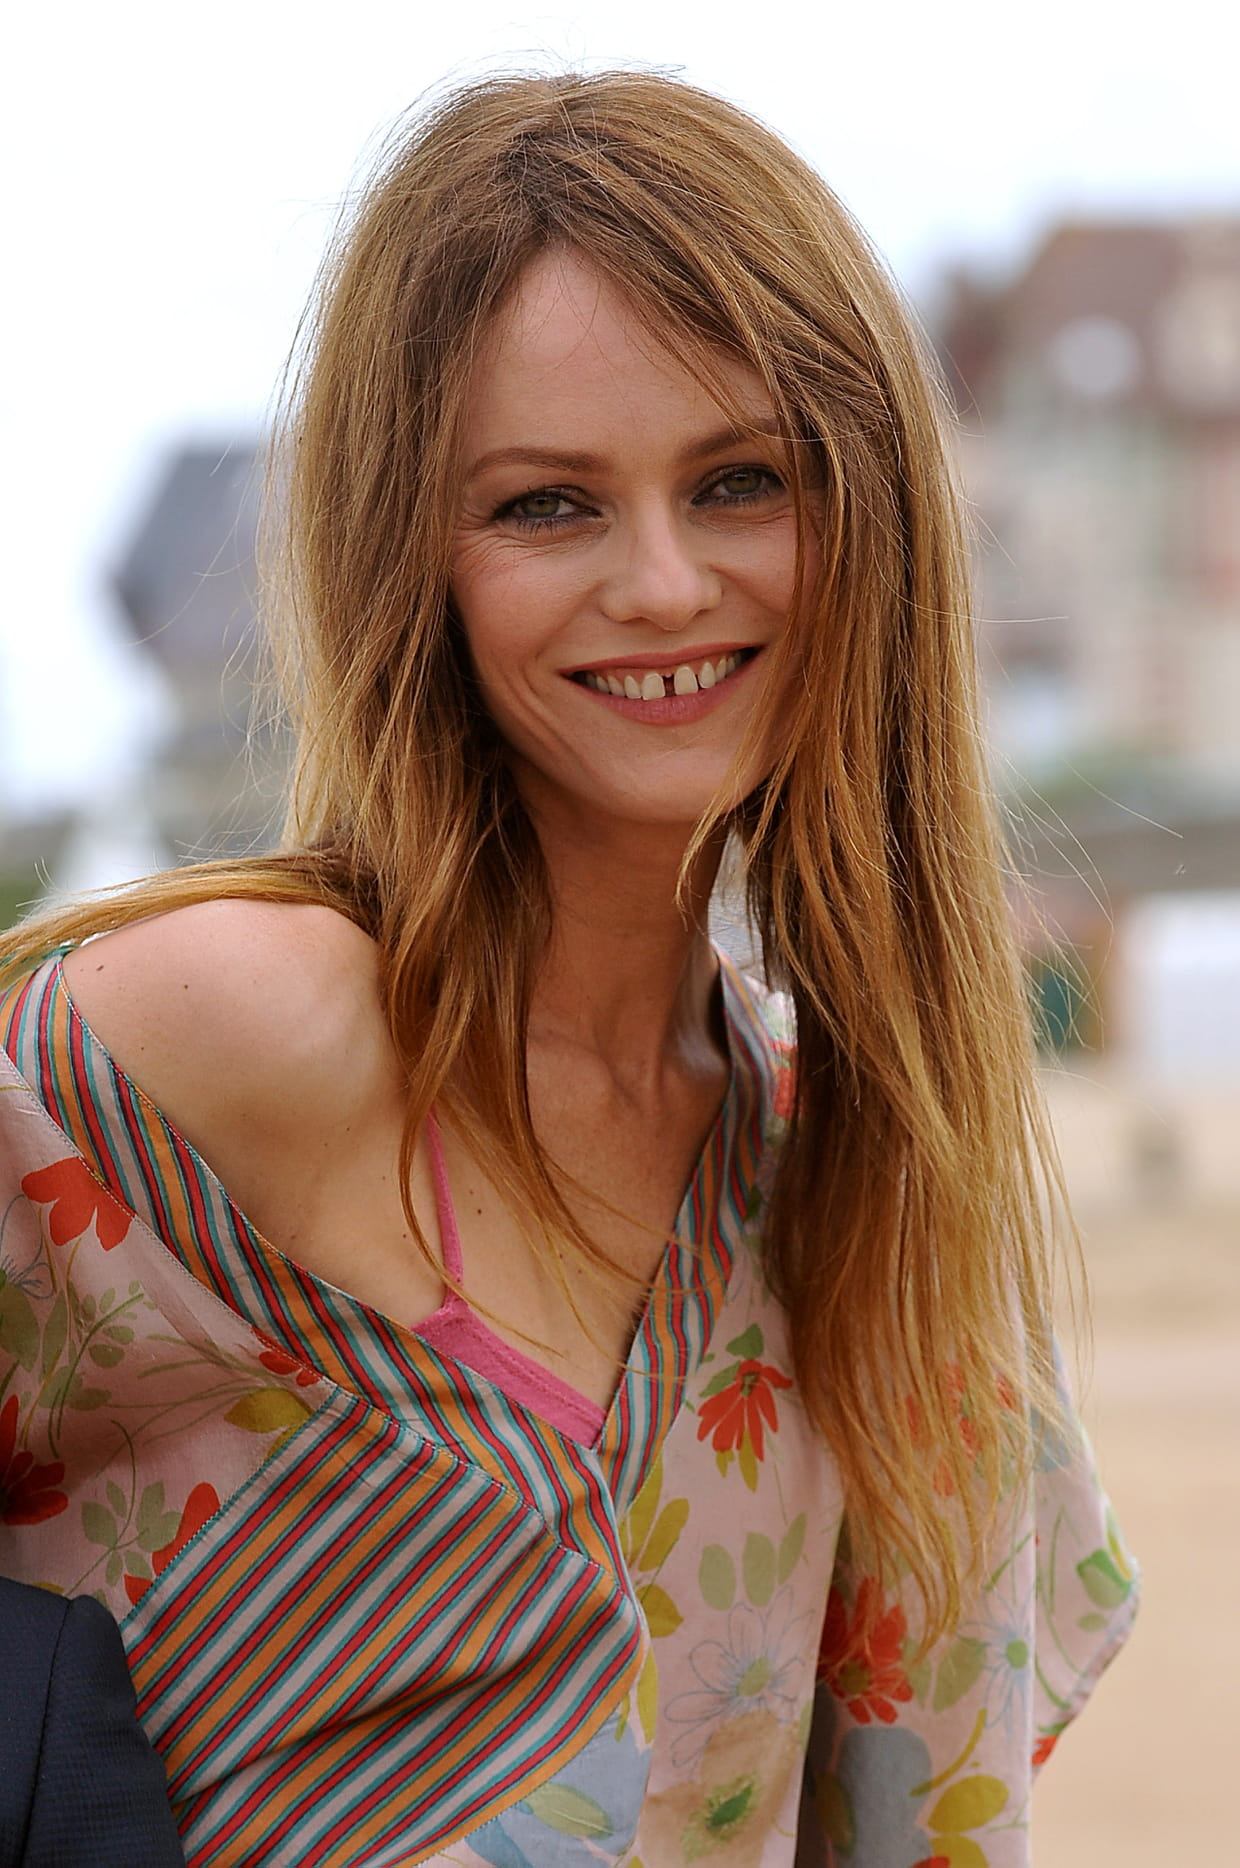 Photos vanessa paradis cheveux courts Pr nom Vanessa : signification, origine, fete